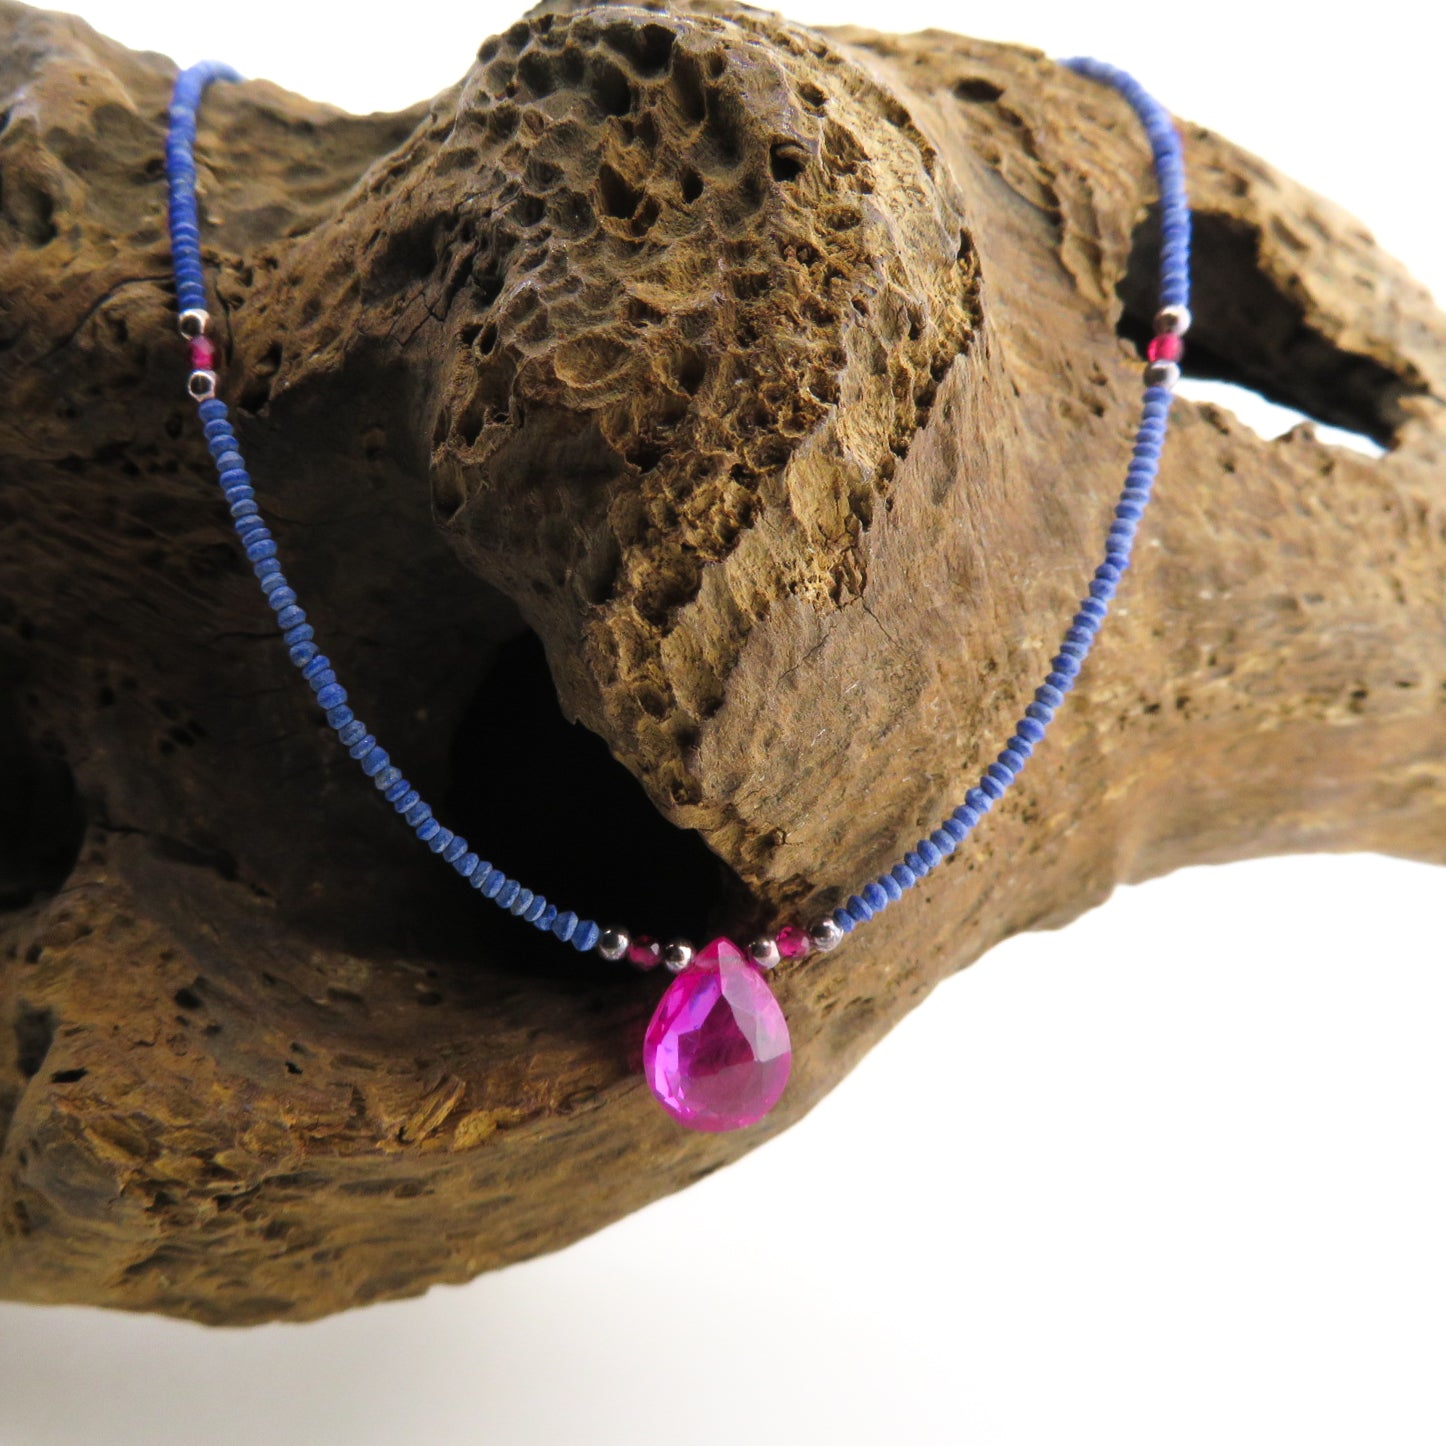 Lapis Lazuli Necklace with Pink Quartz, Garnet and Silver Beads